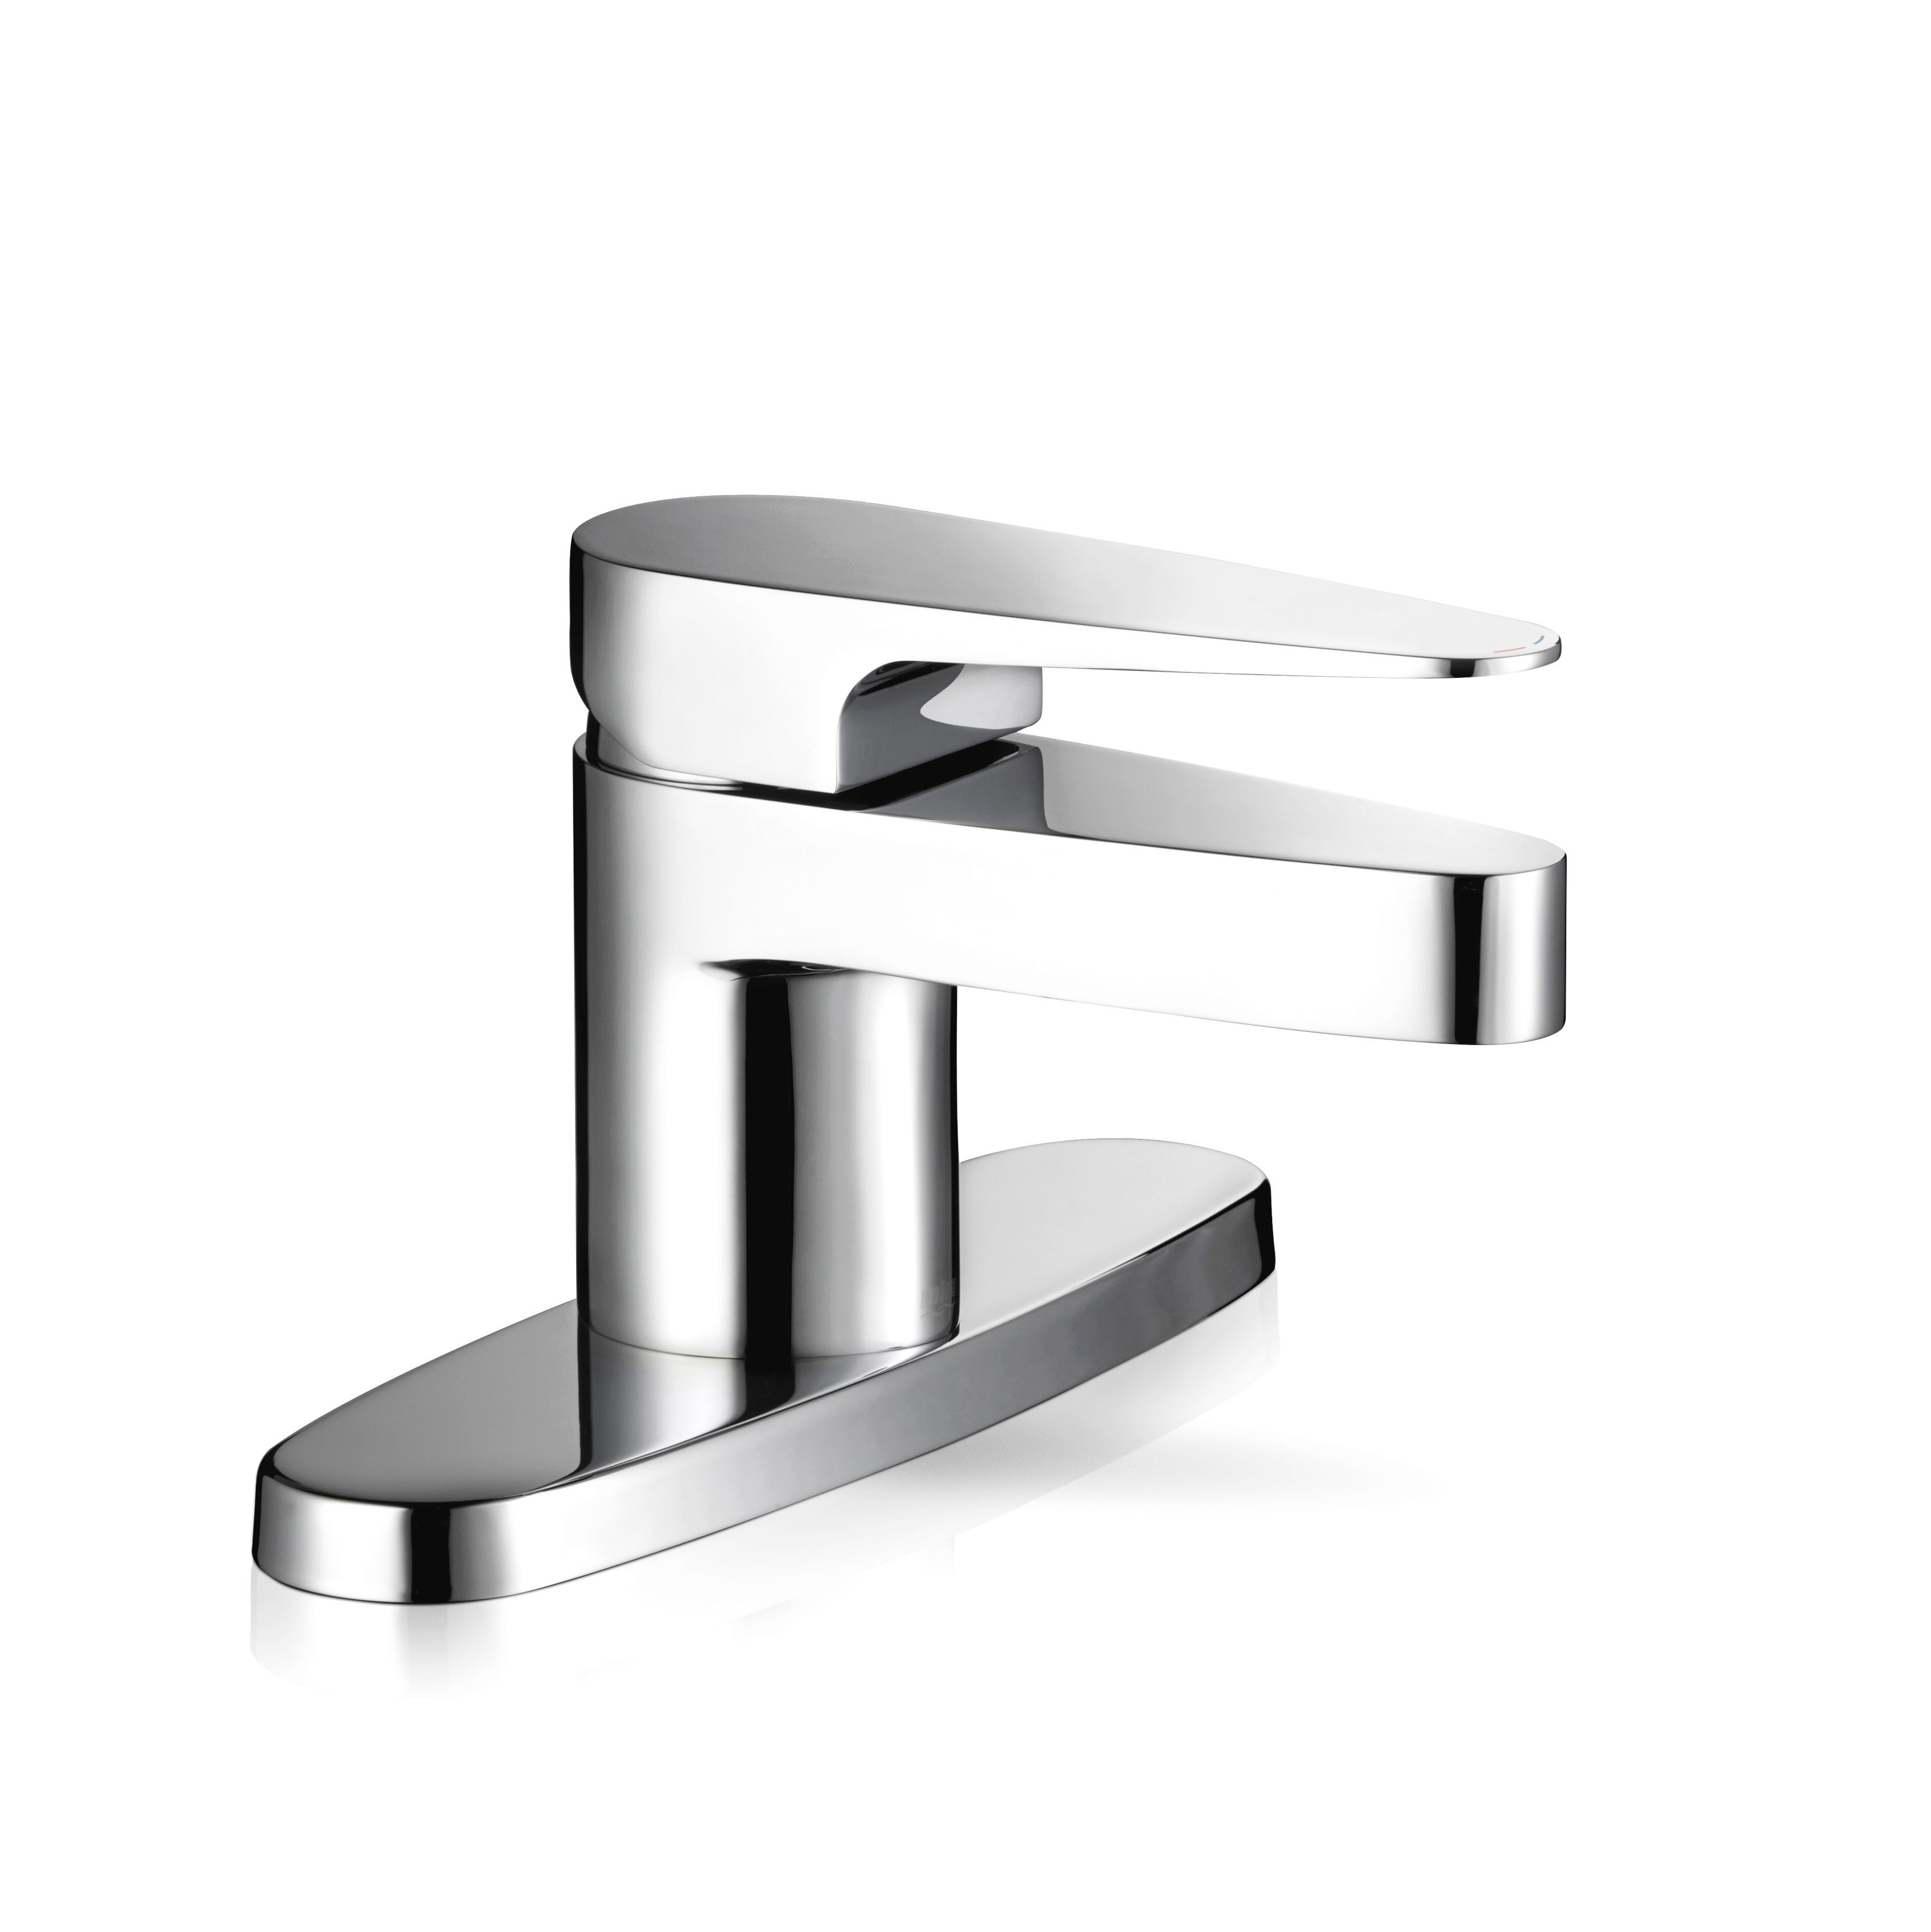 Mira Precision Chrome Bath Mixer Tap | Departments | DIY at B&Q ...